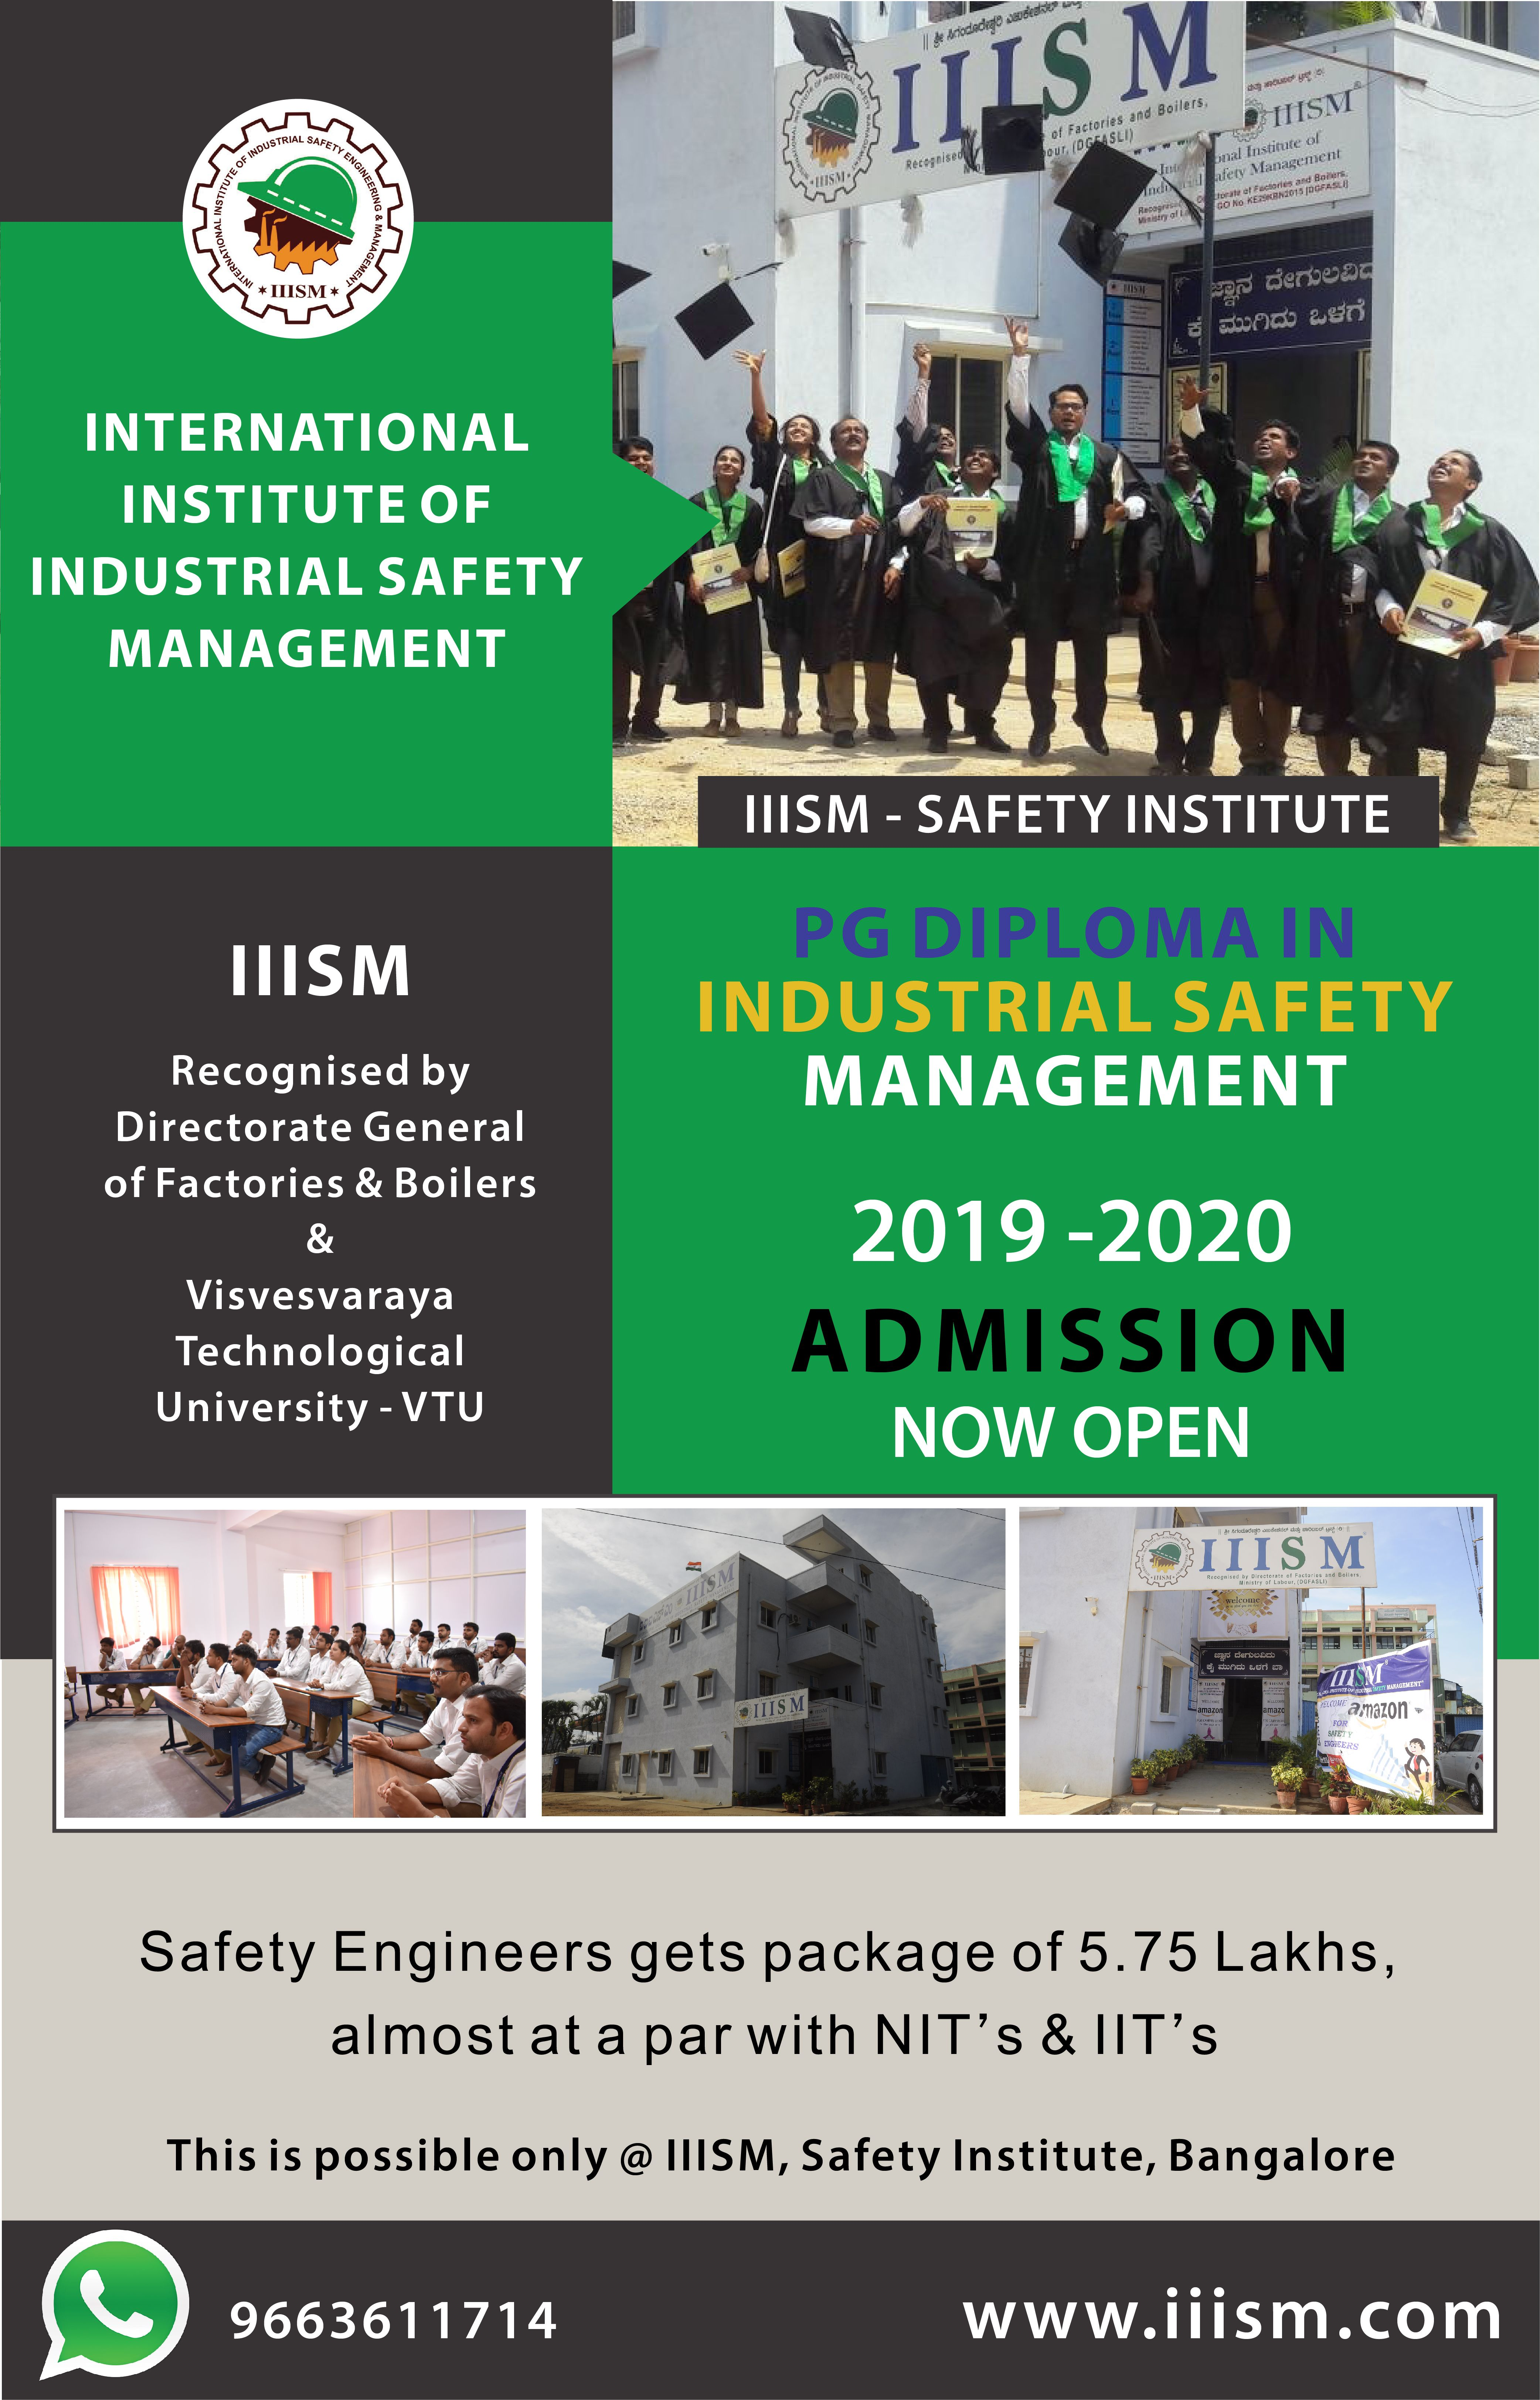 ADMISSIONS OPEN General management, Industrial safety